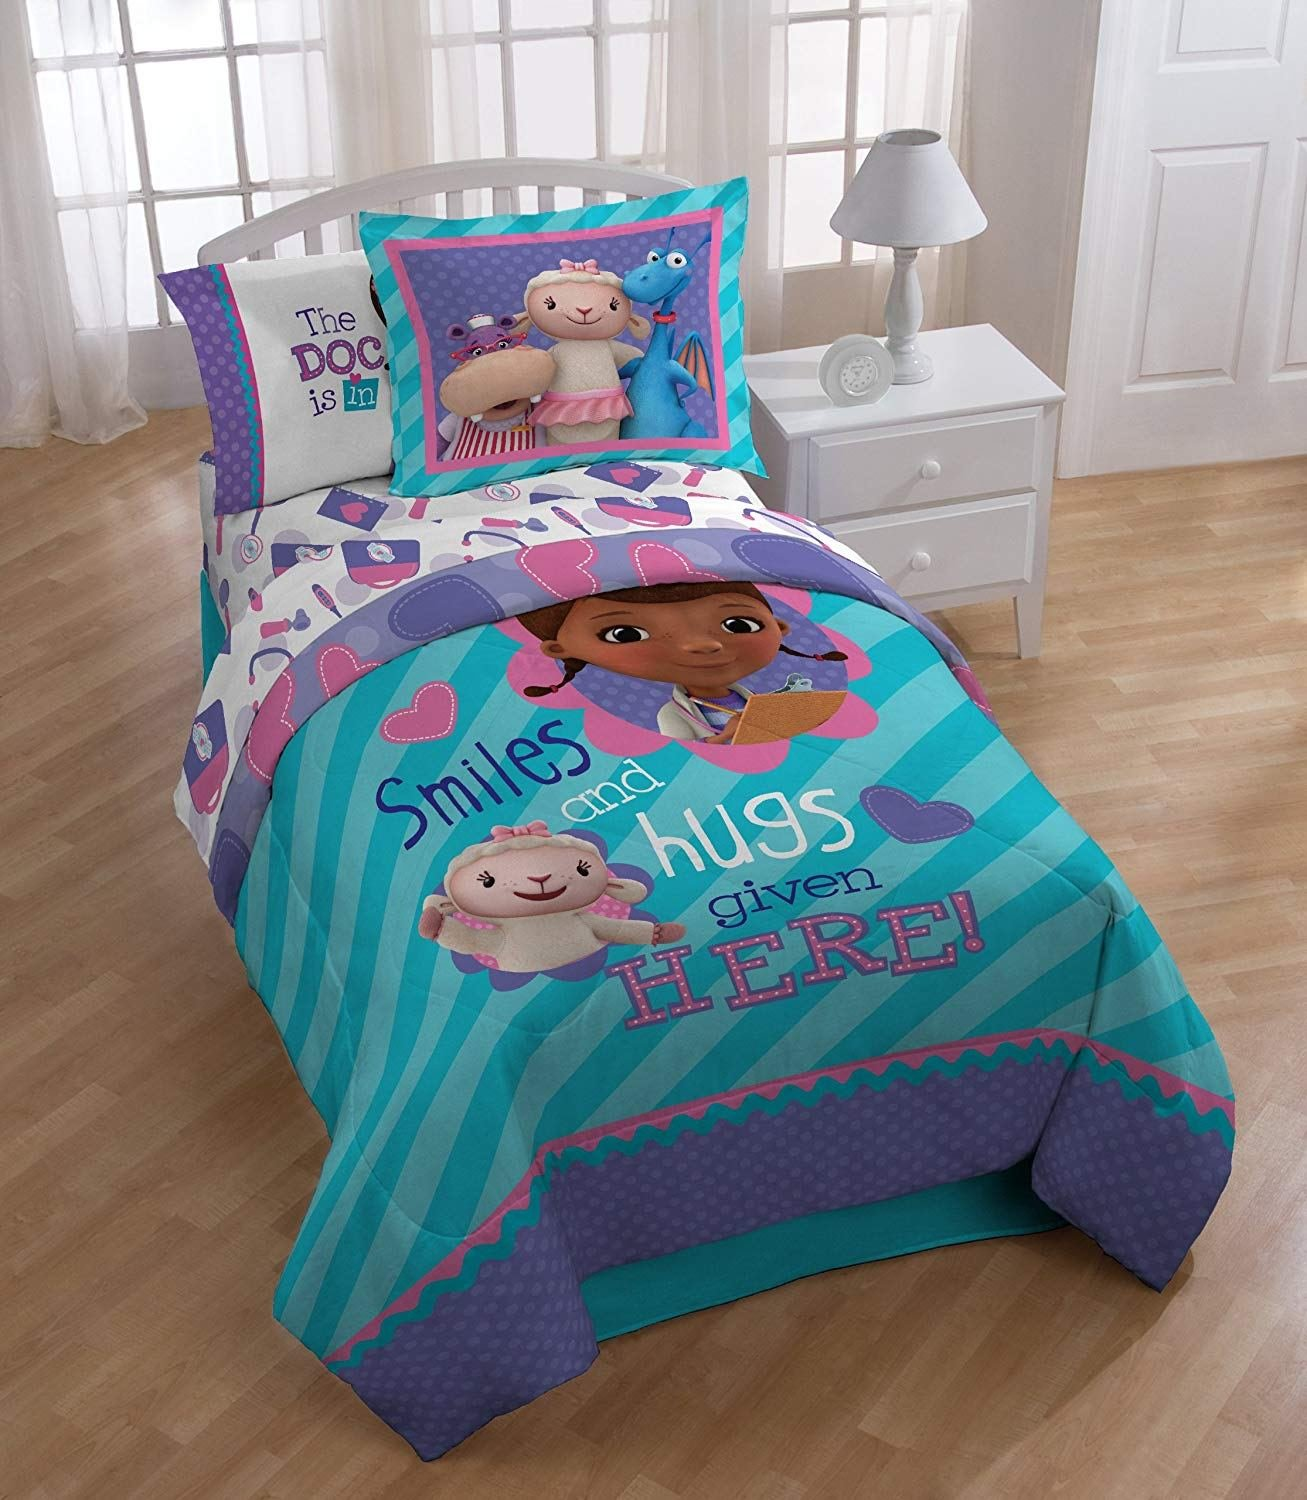 Best Doc Mcstuffins Bedding Totally Kids Totally Bedrooms With Pictures